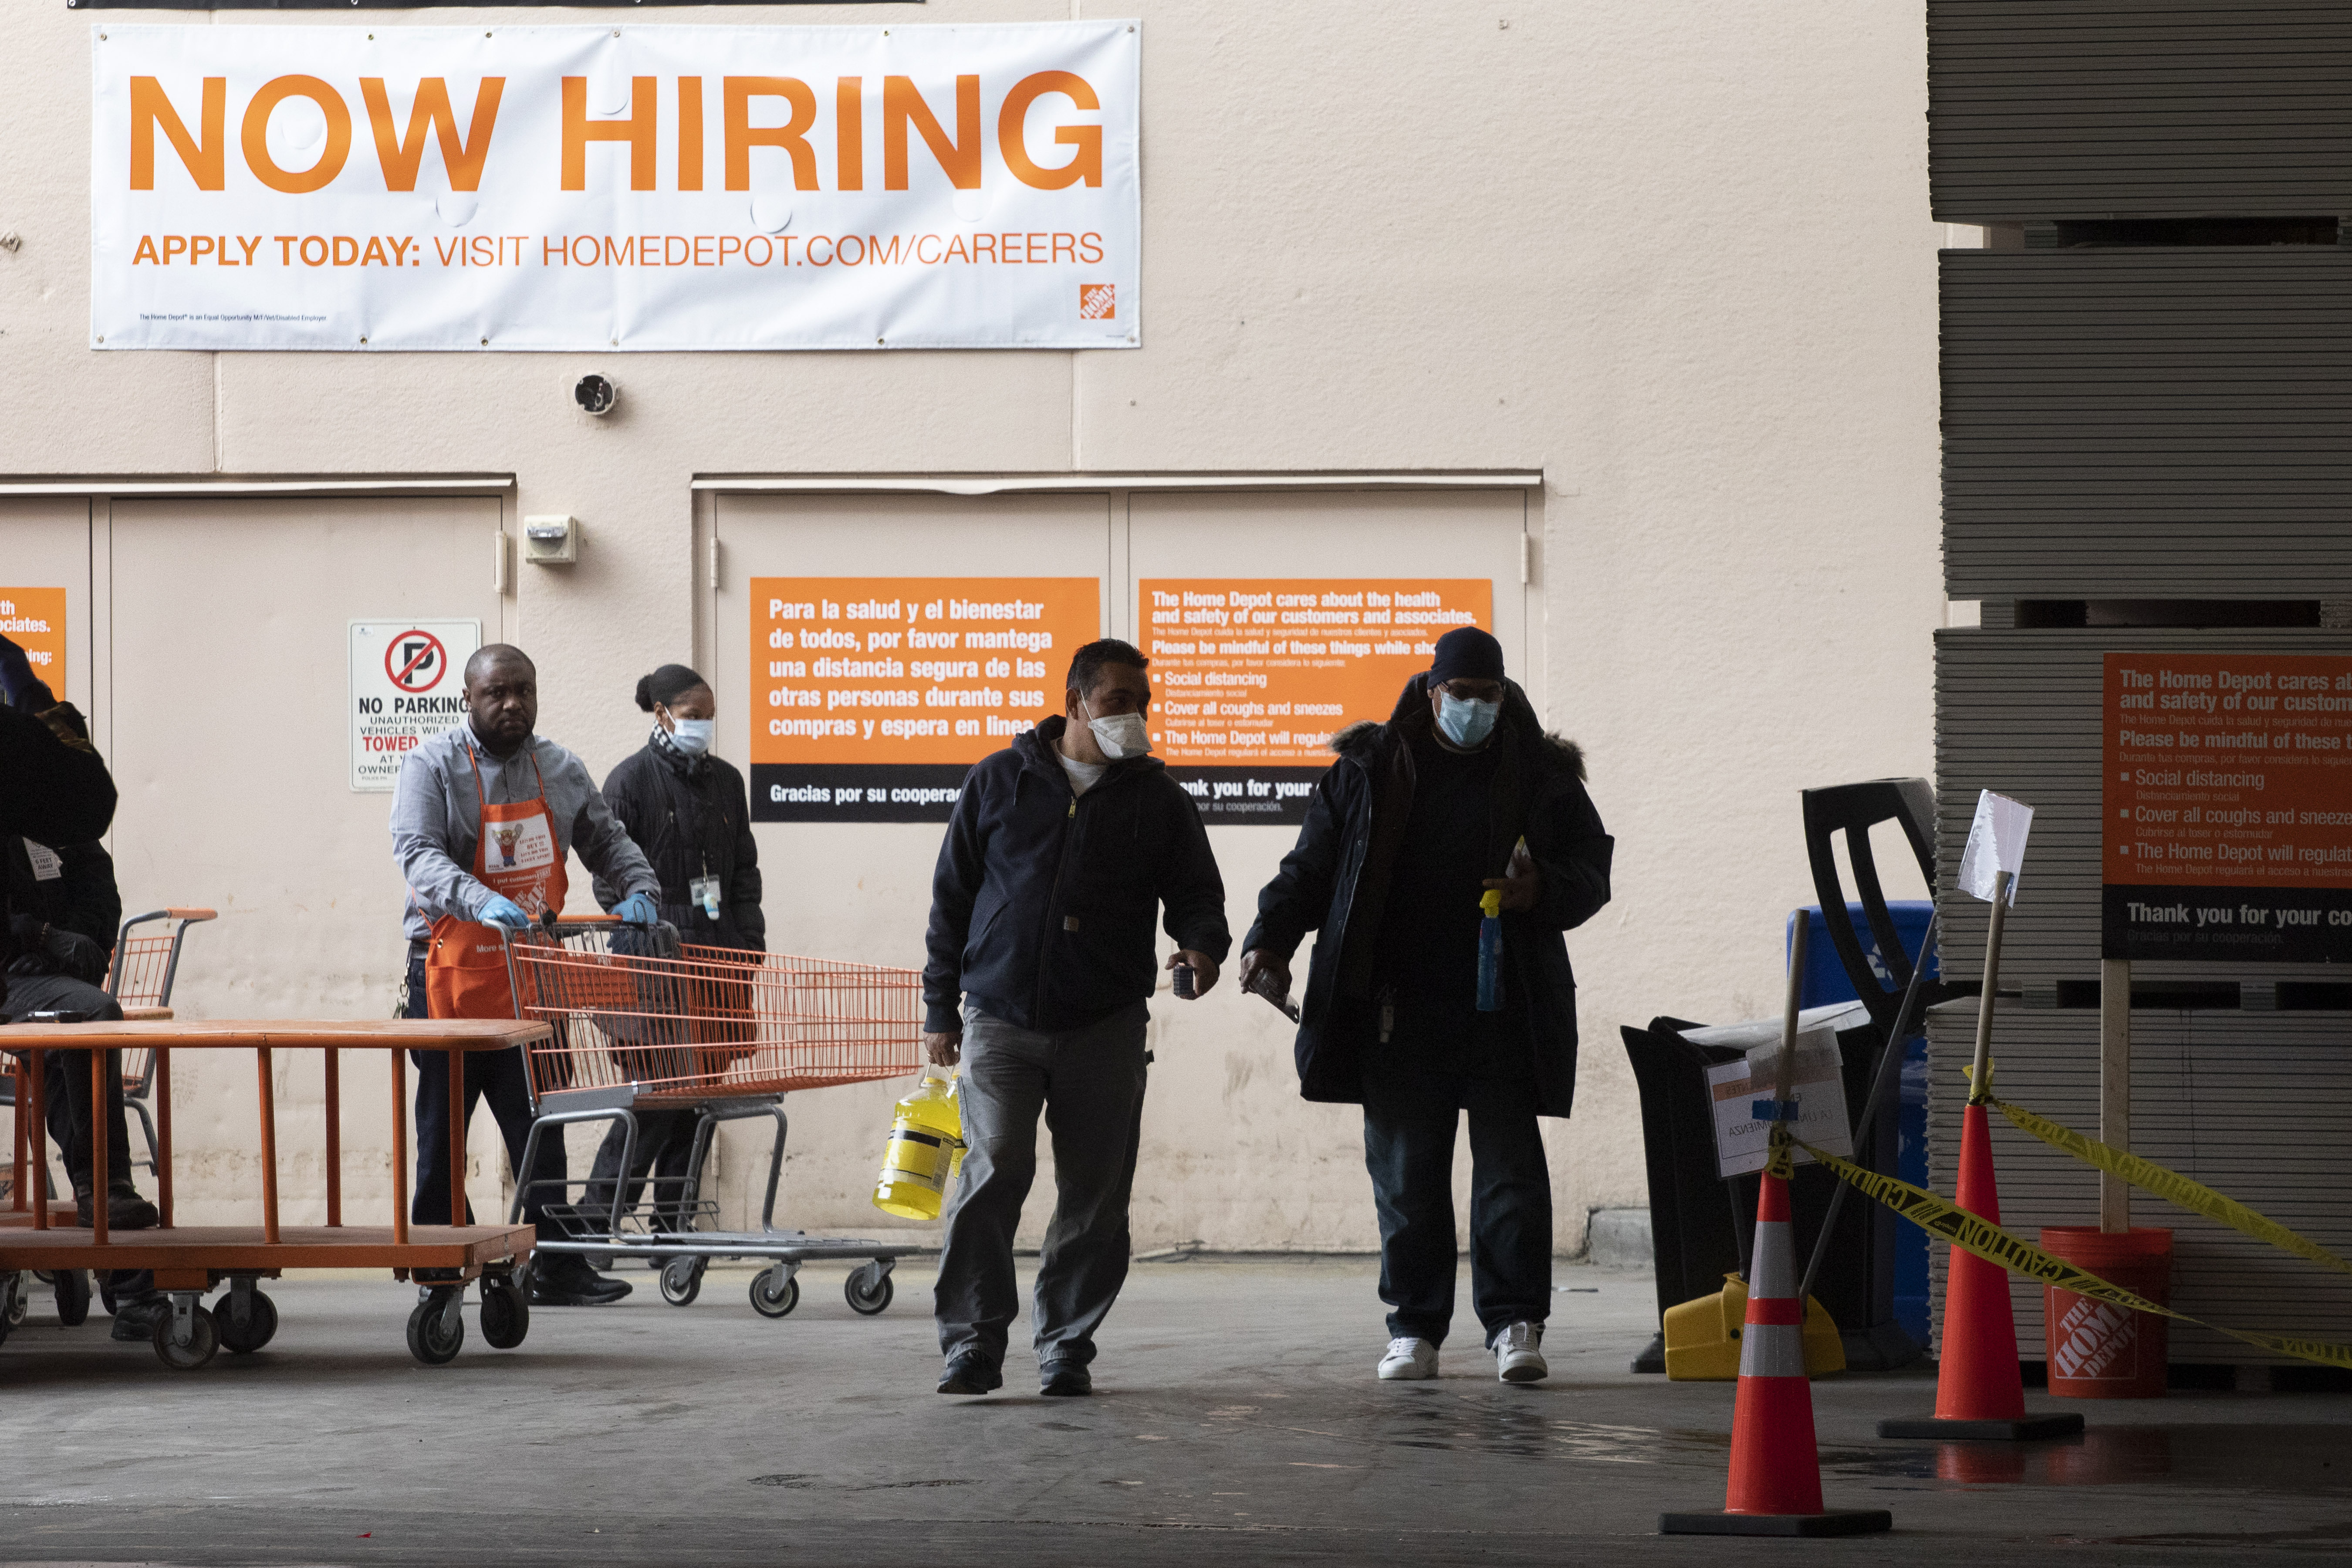 We May Have Lost 21 Years Of Job Growth